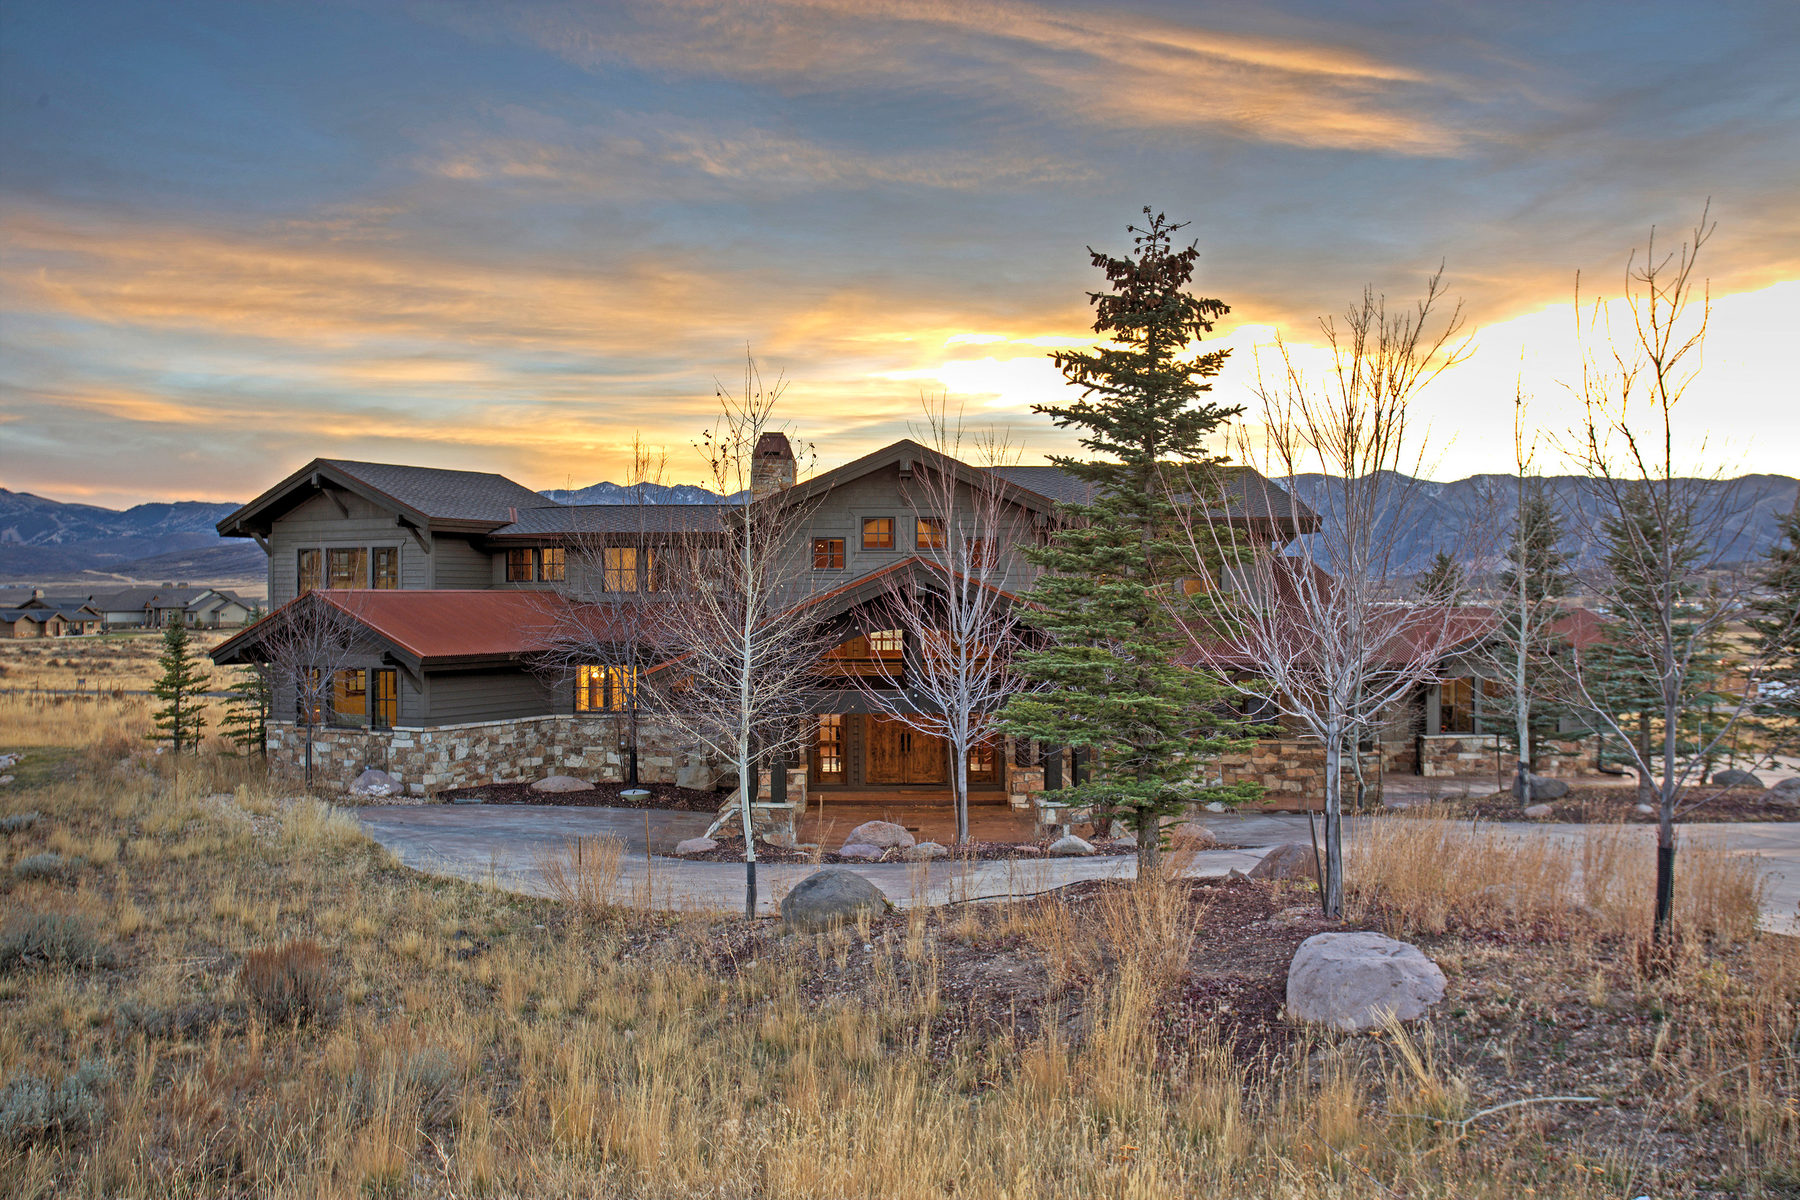 Single Family Home for Sale at Panoramic Ski Views in Promontory 2382 Palomino Trl Park City, Utah, 84098 United States